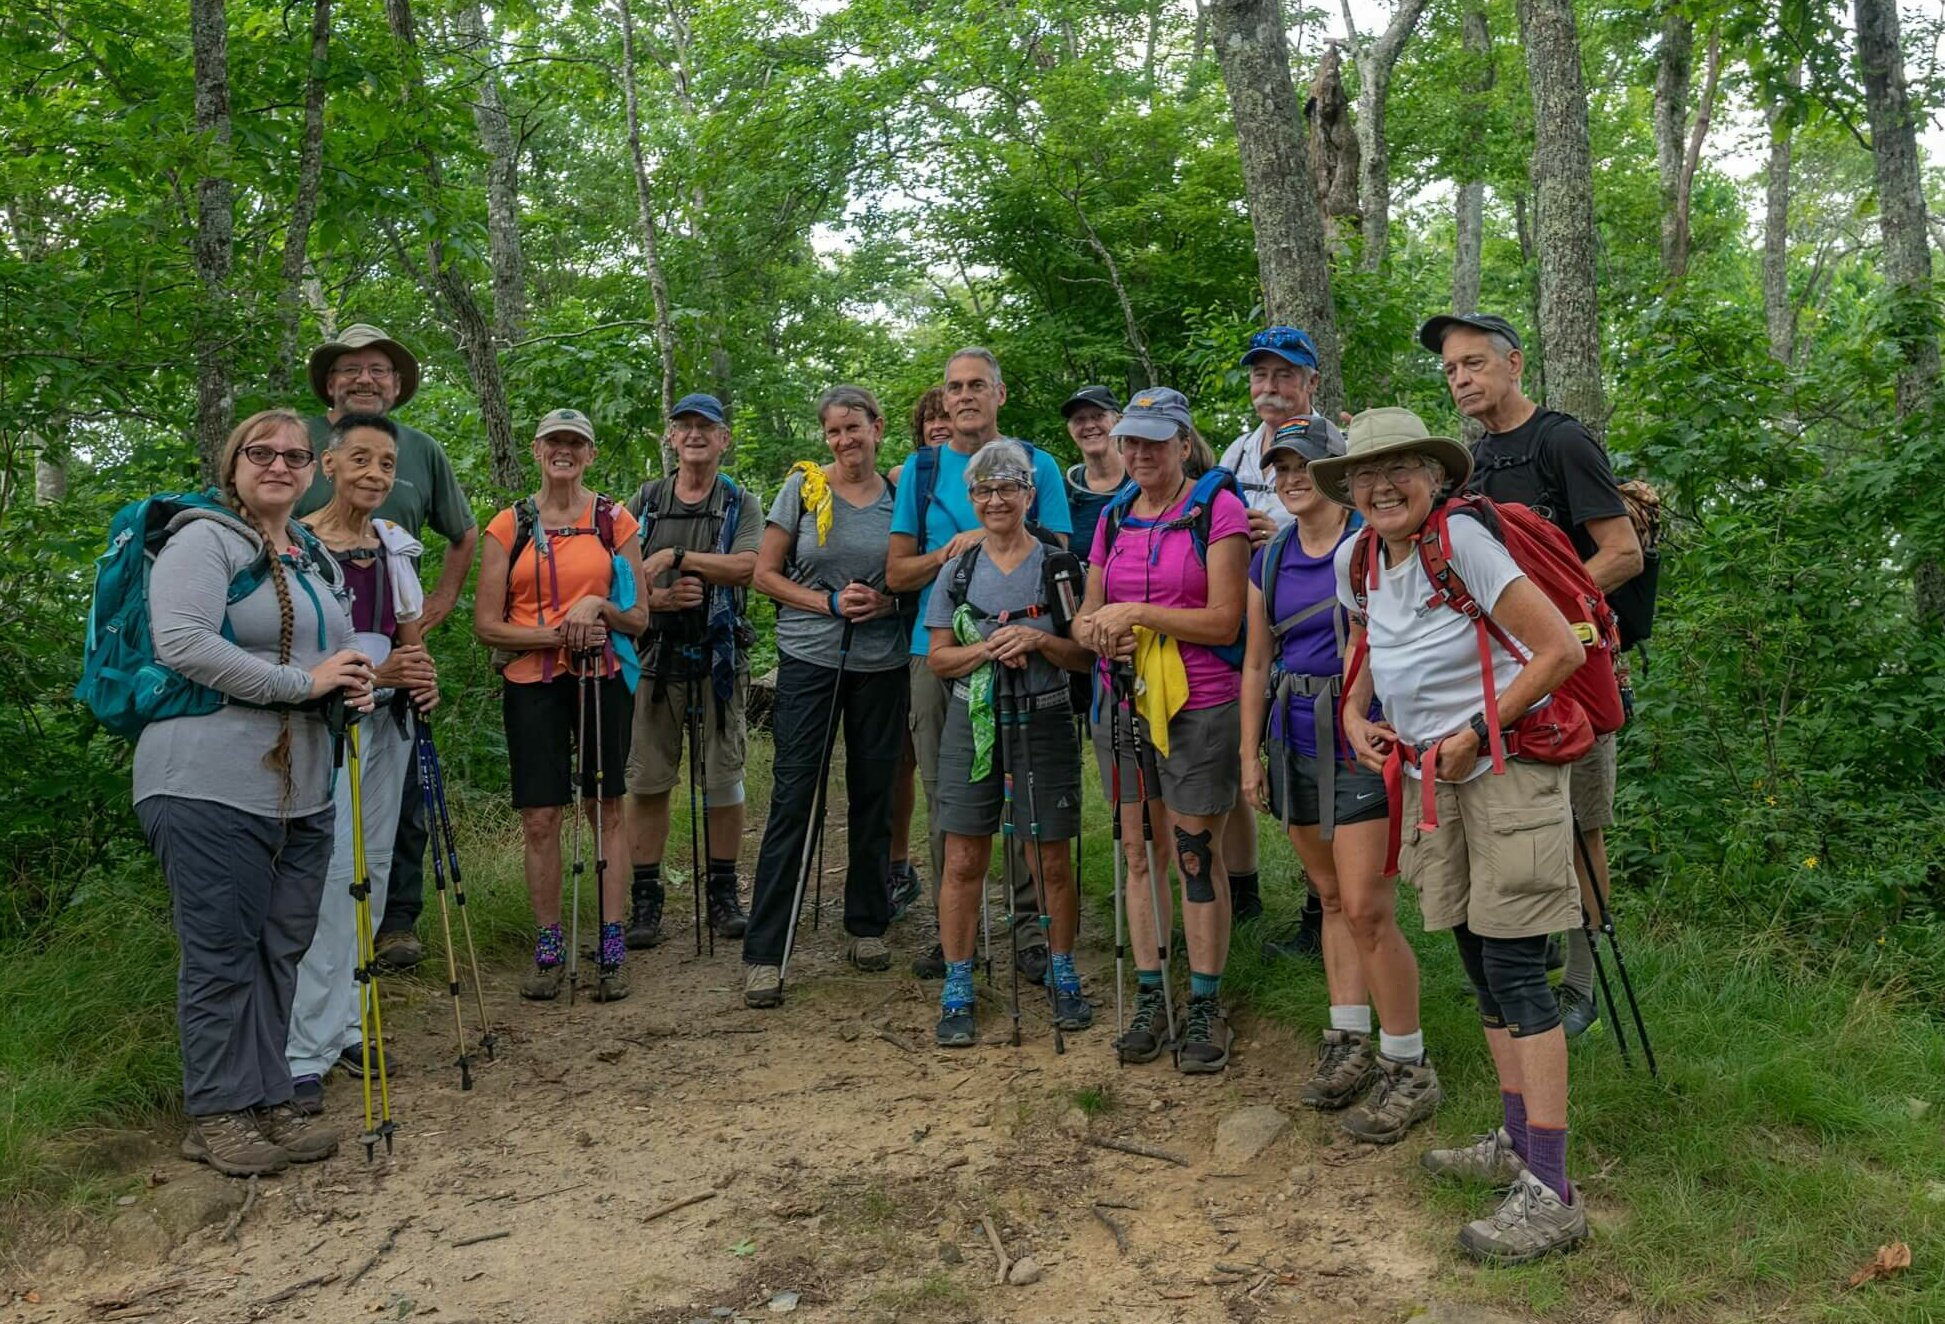 group photo of FOTS hikers